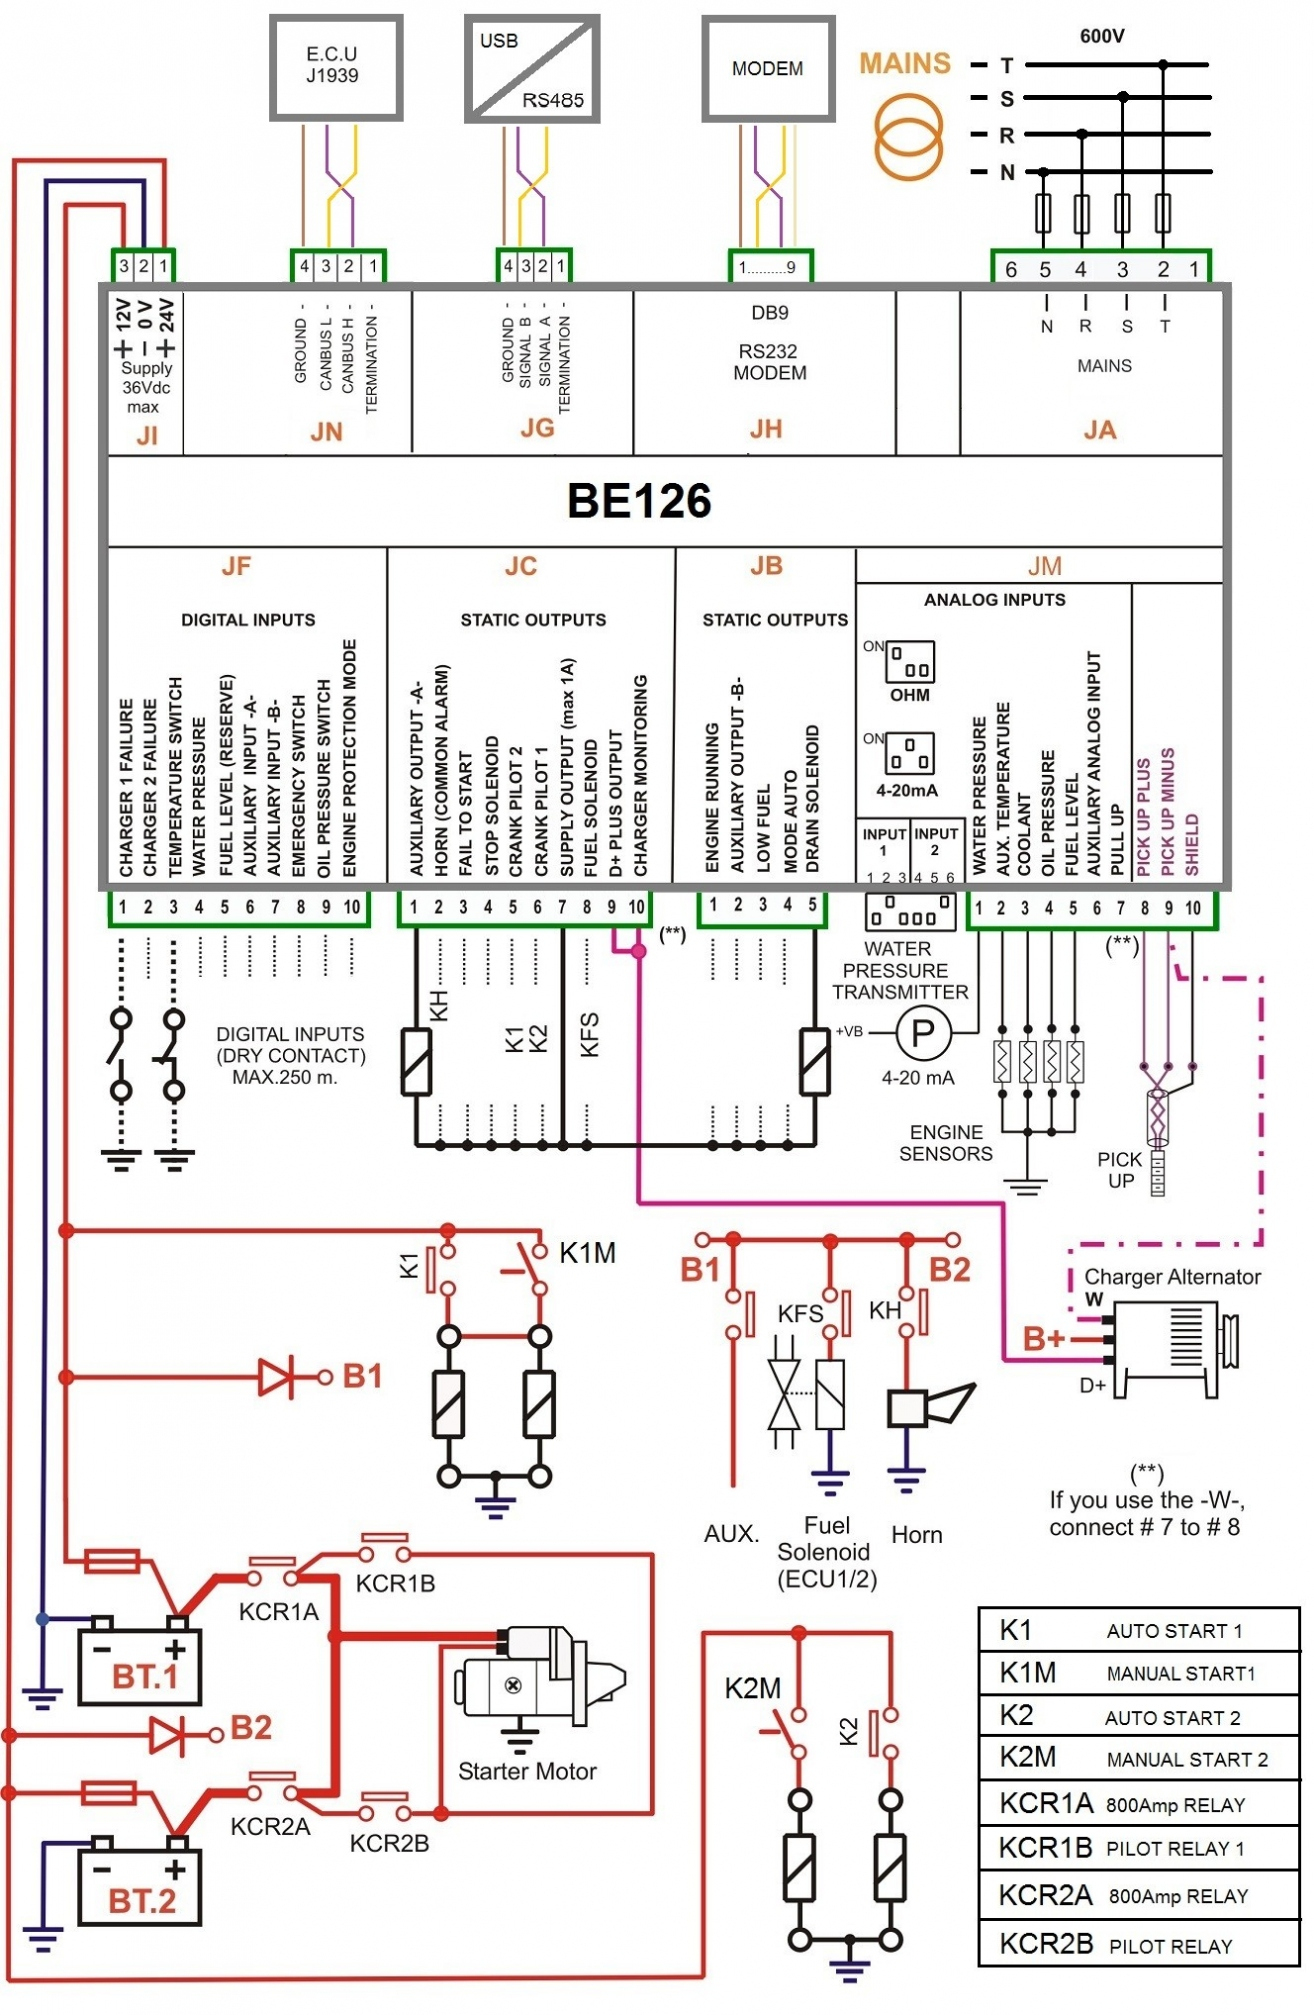 Wiring Diagram For Pool Light Transformer Inspirationa Pool Pump - Pool Pump Wiring Diagram